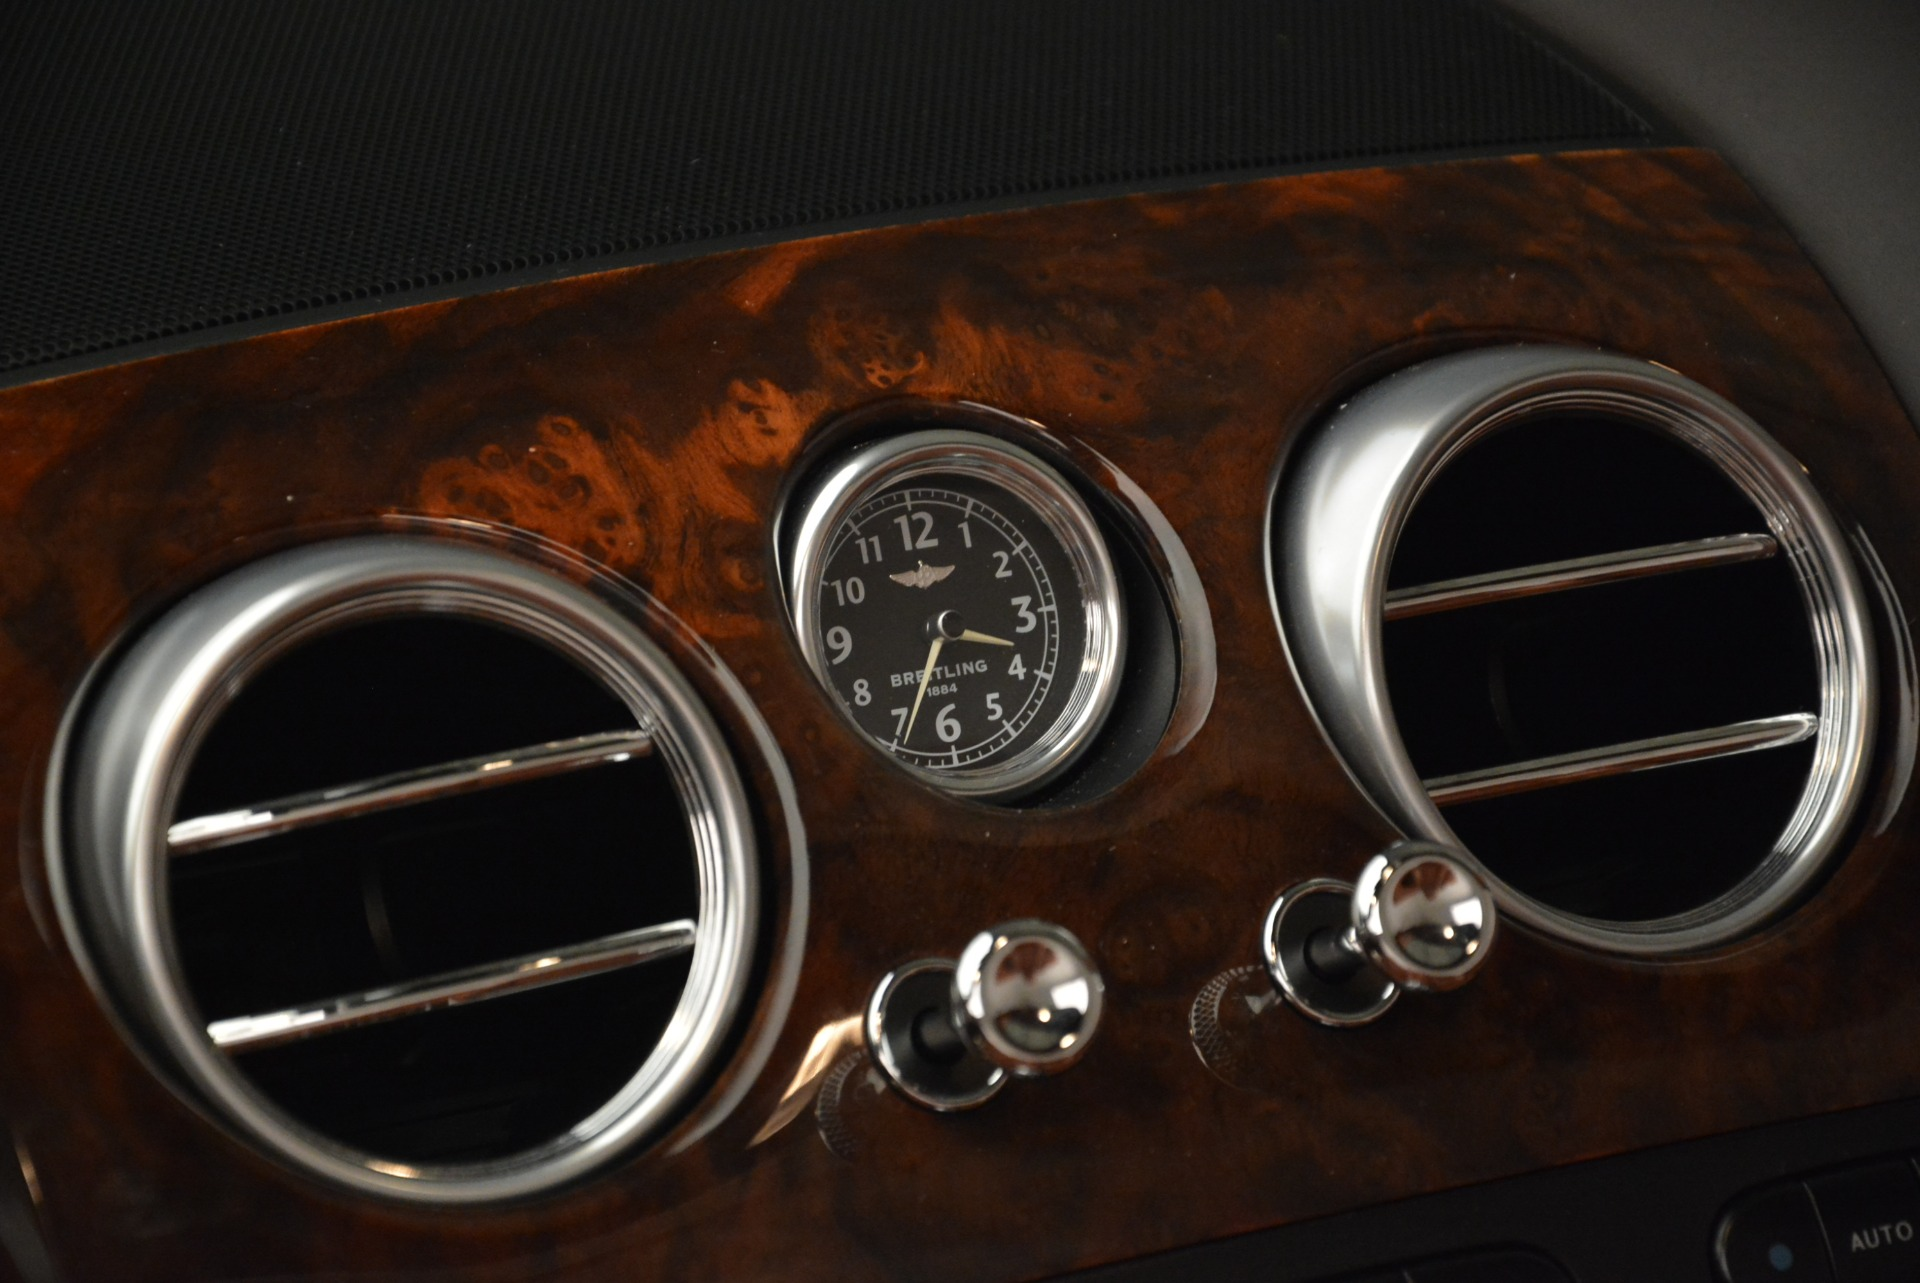 Used 2008 Bentley Continental GT W12 For Sale In Westport, CT 2190_p32